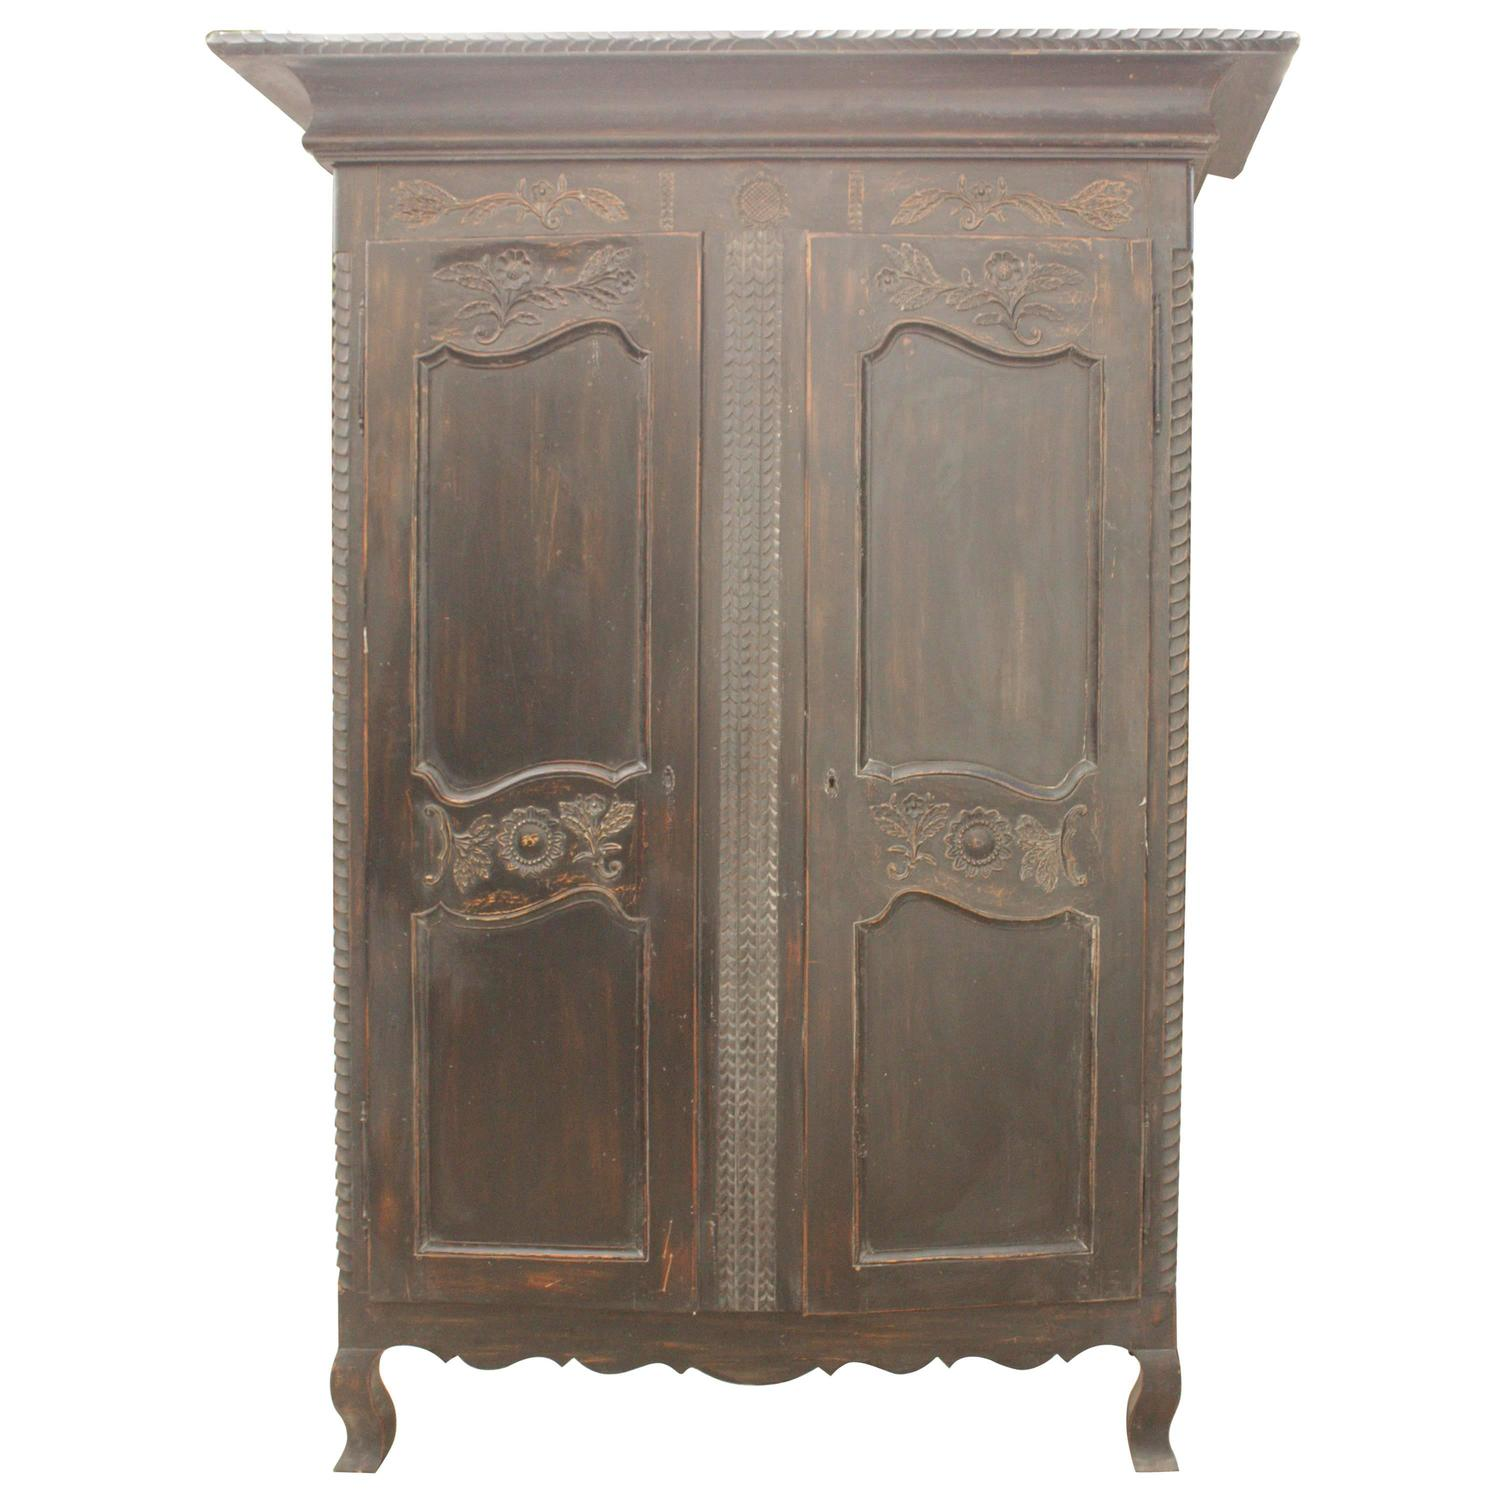 Marvelous photograph of 1950s French Ebonized Wood Distressed Armoire at 1stdibs with #888844 color and 1500x1500 pixels